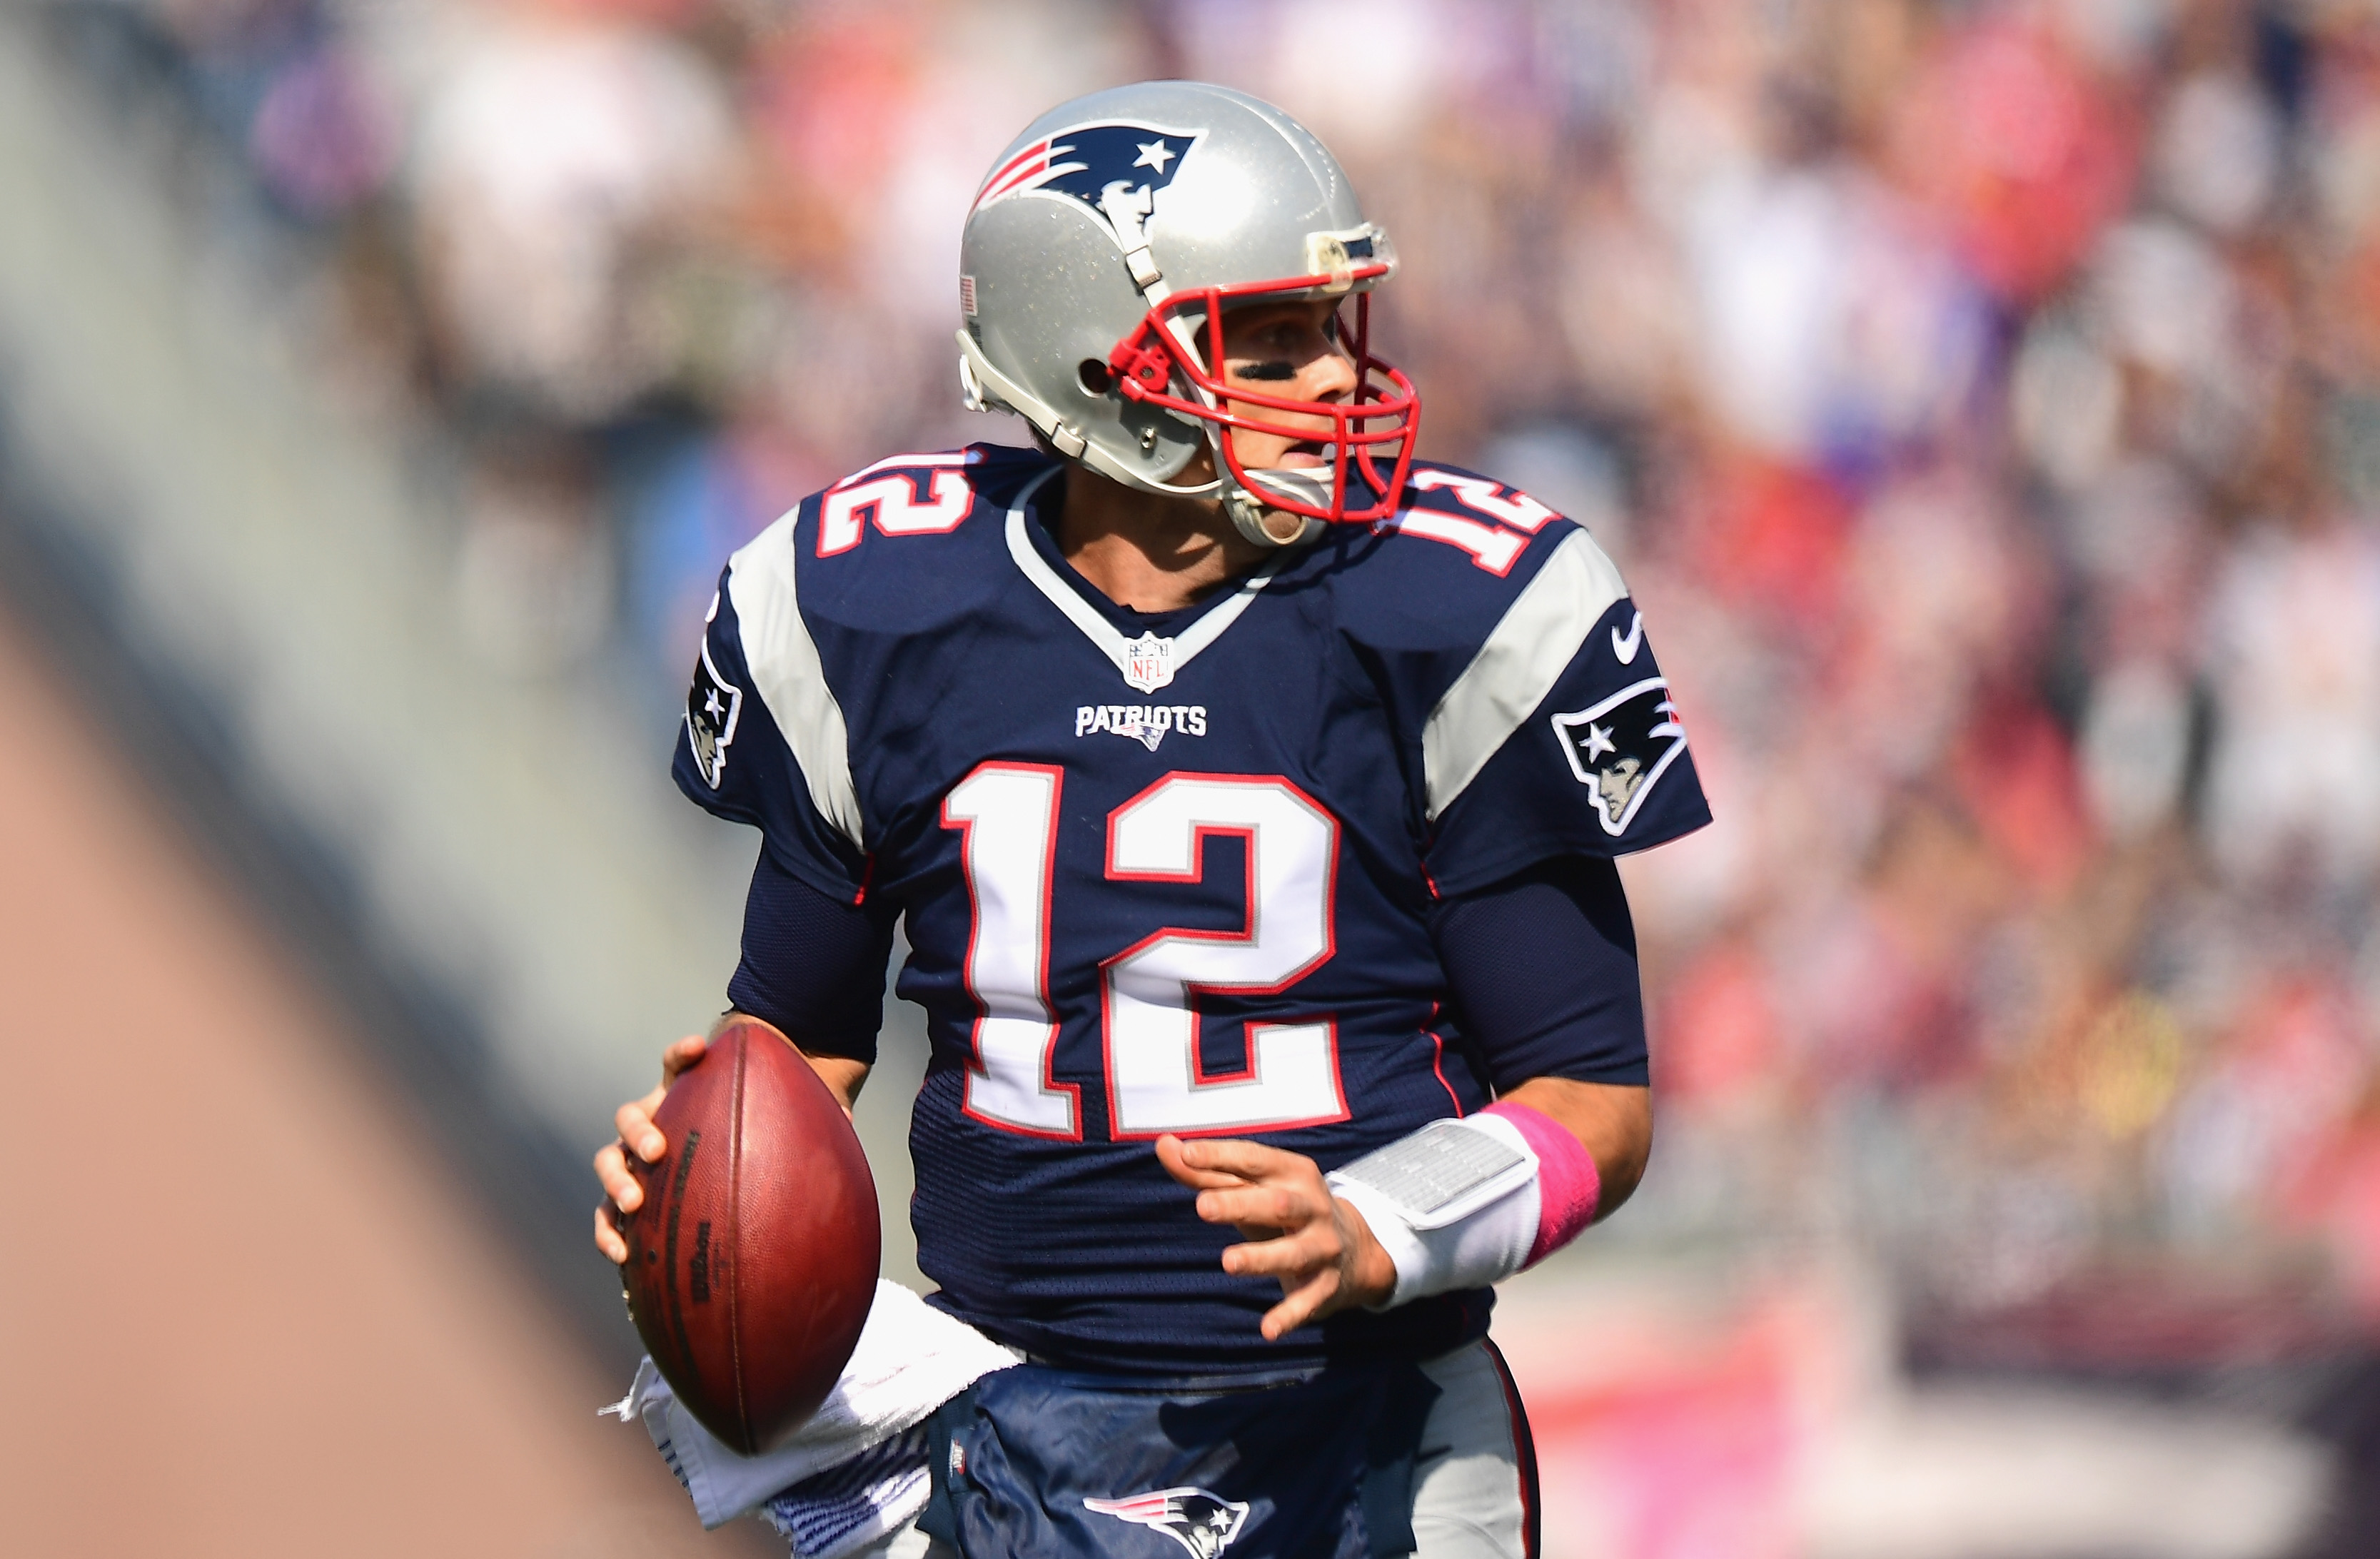 patriots steelers prediction, patriots steelers odds, patriots steelers pick against the spread, patriots steelers point spread